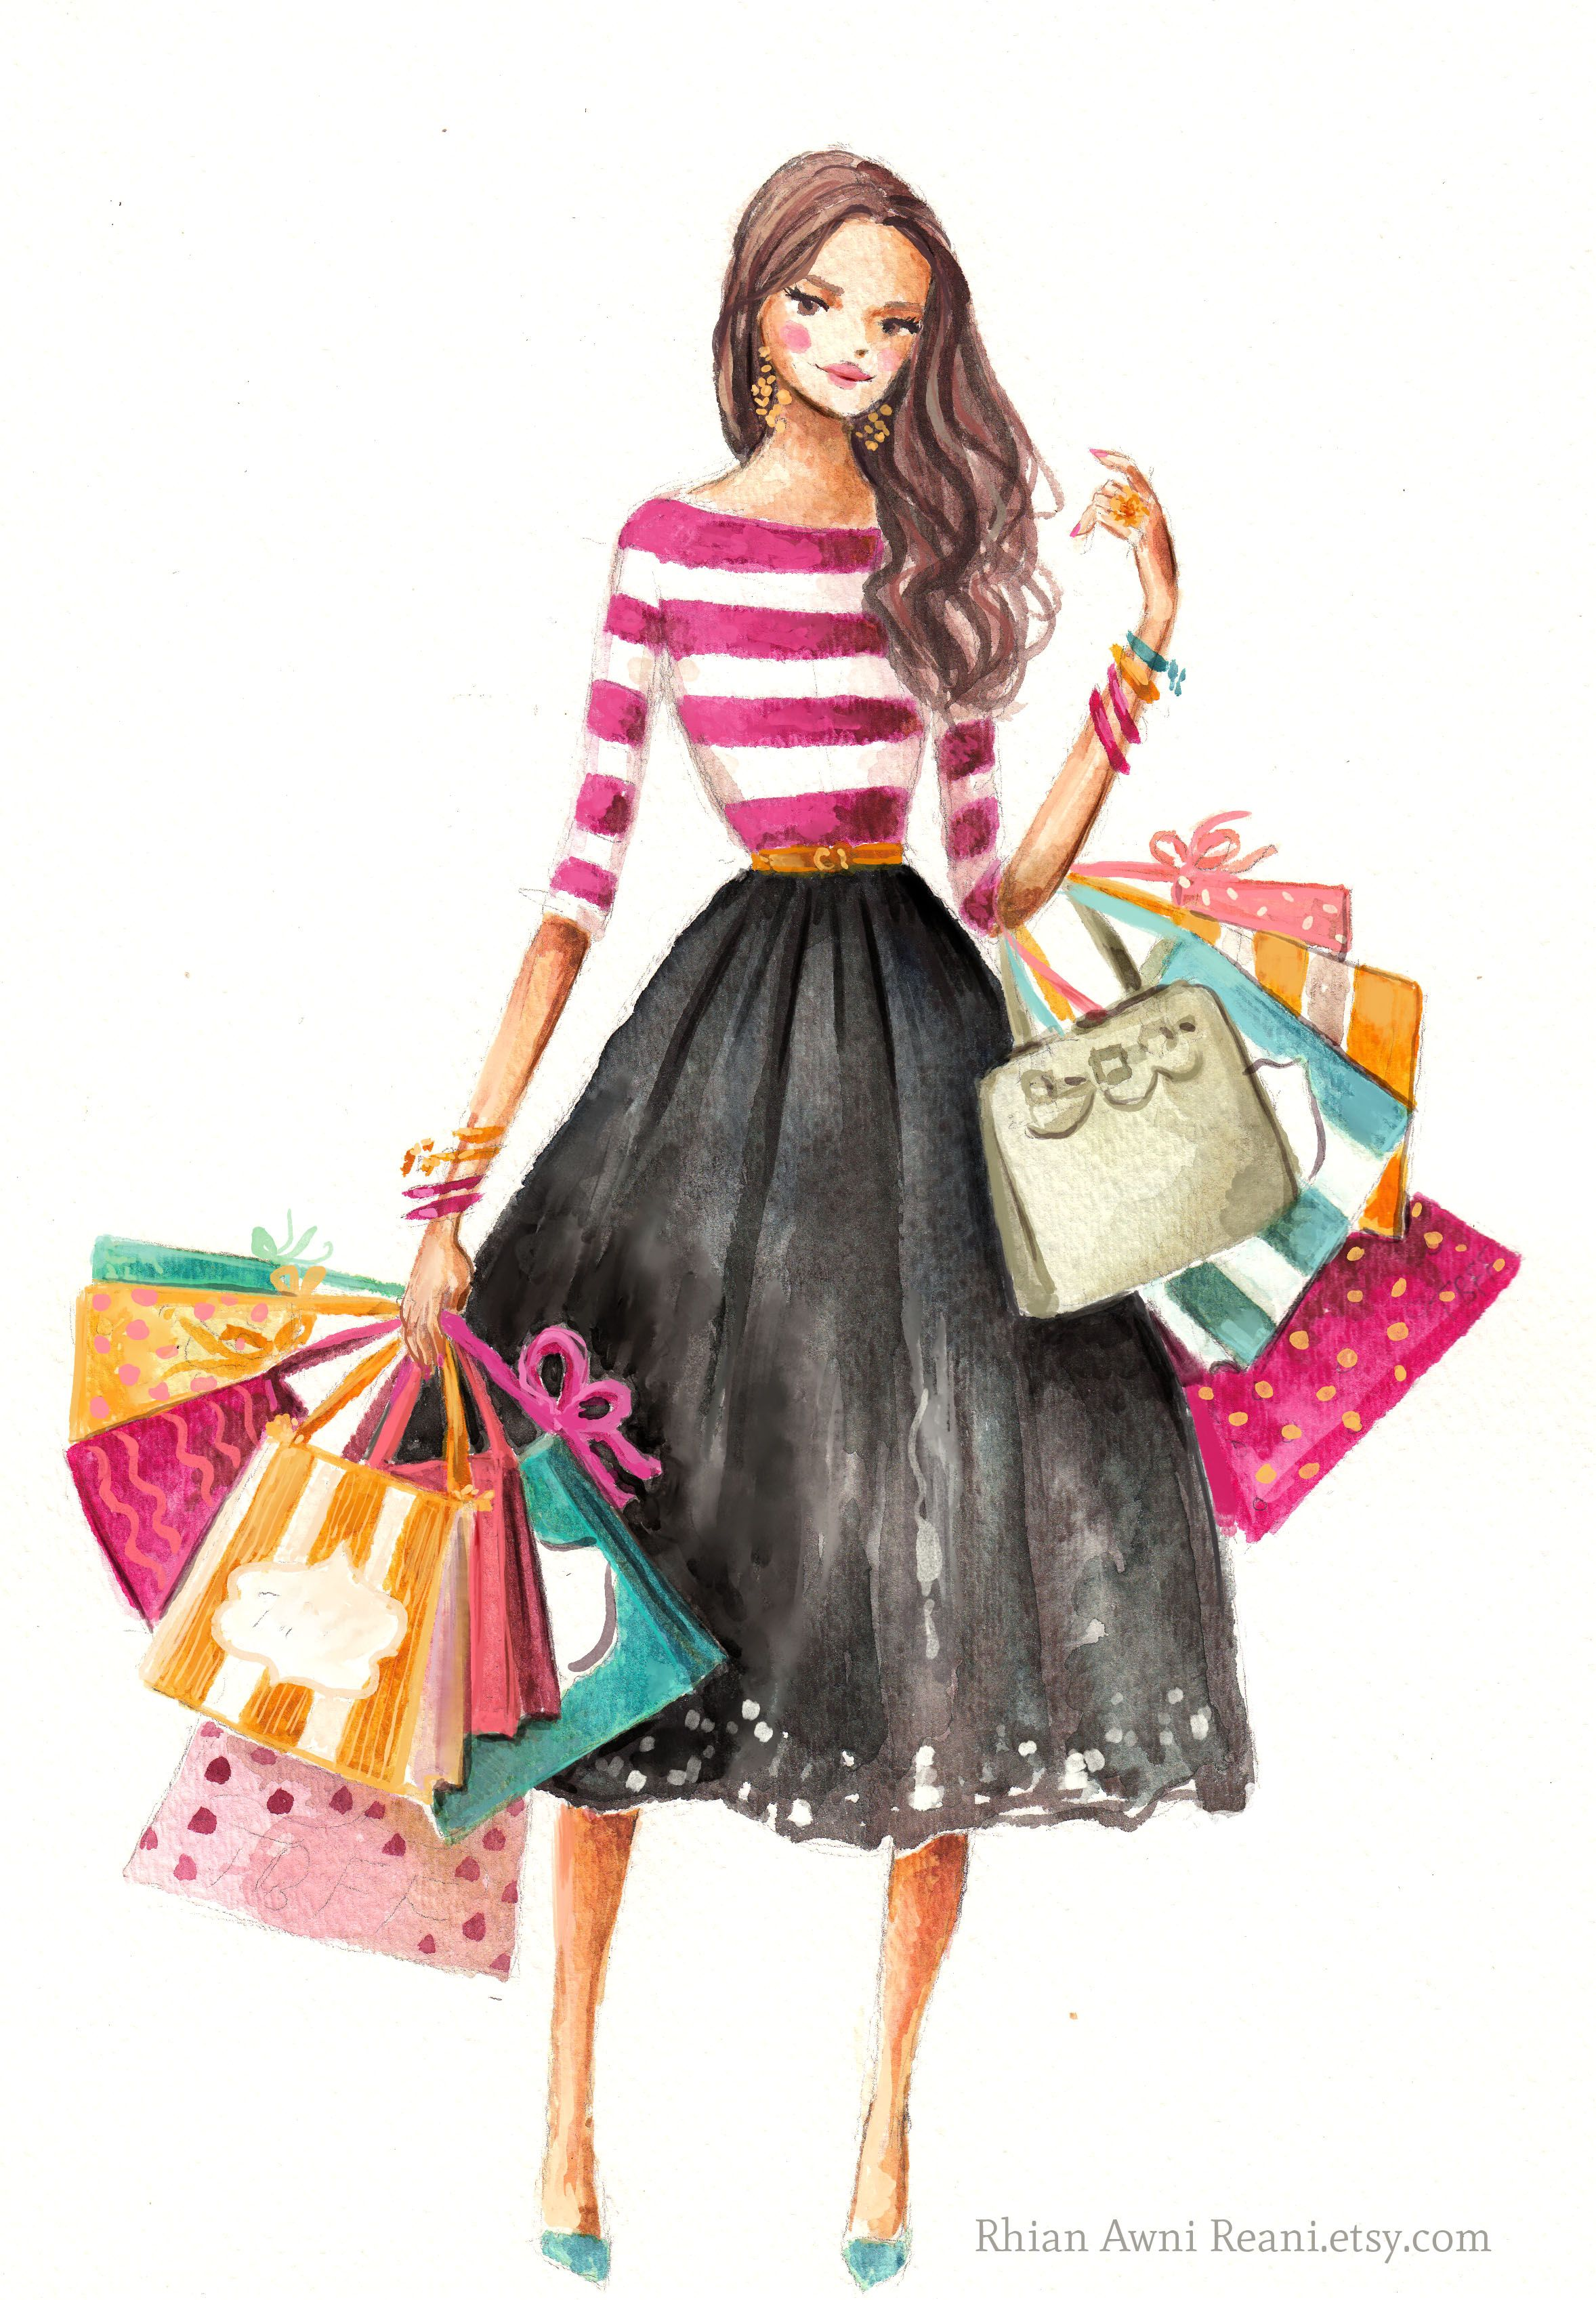 fashion illustration girl shopping by rhian awni on etsy